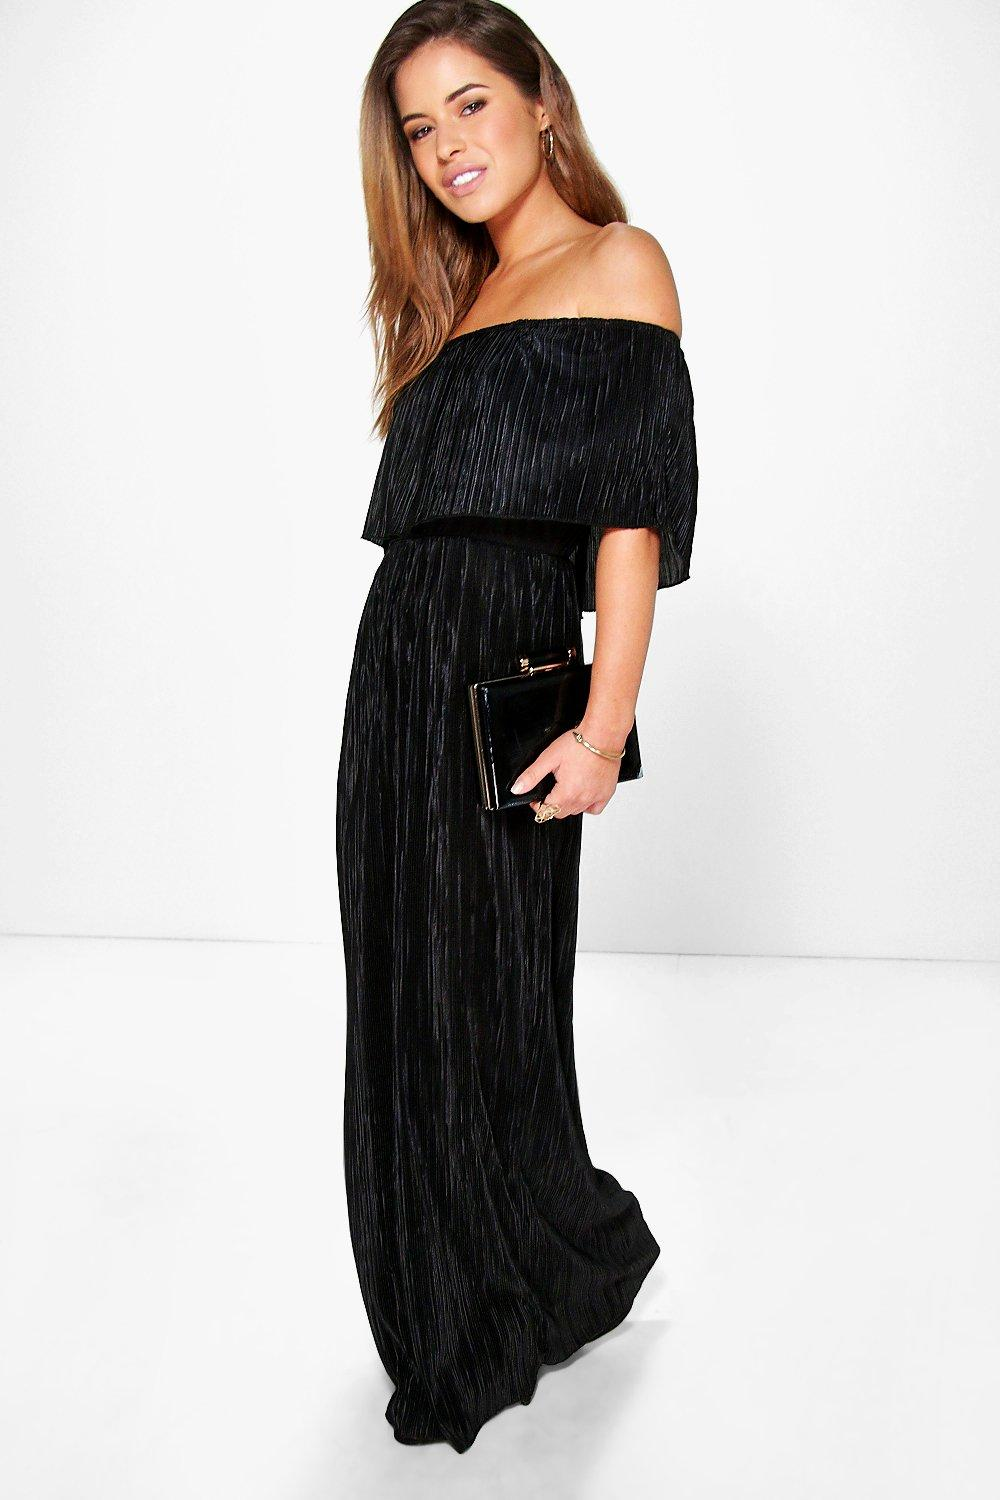 Petite - Shop all Petite Clothing at boohoo.com